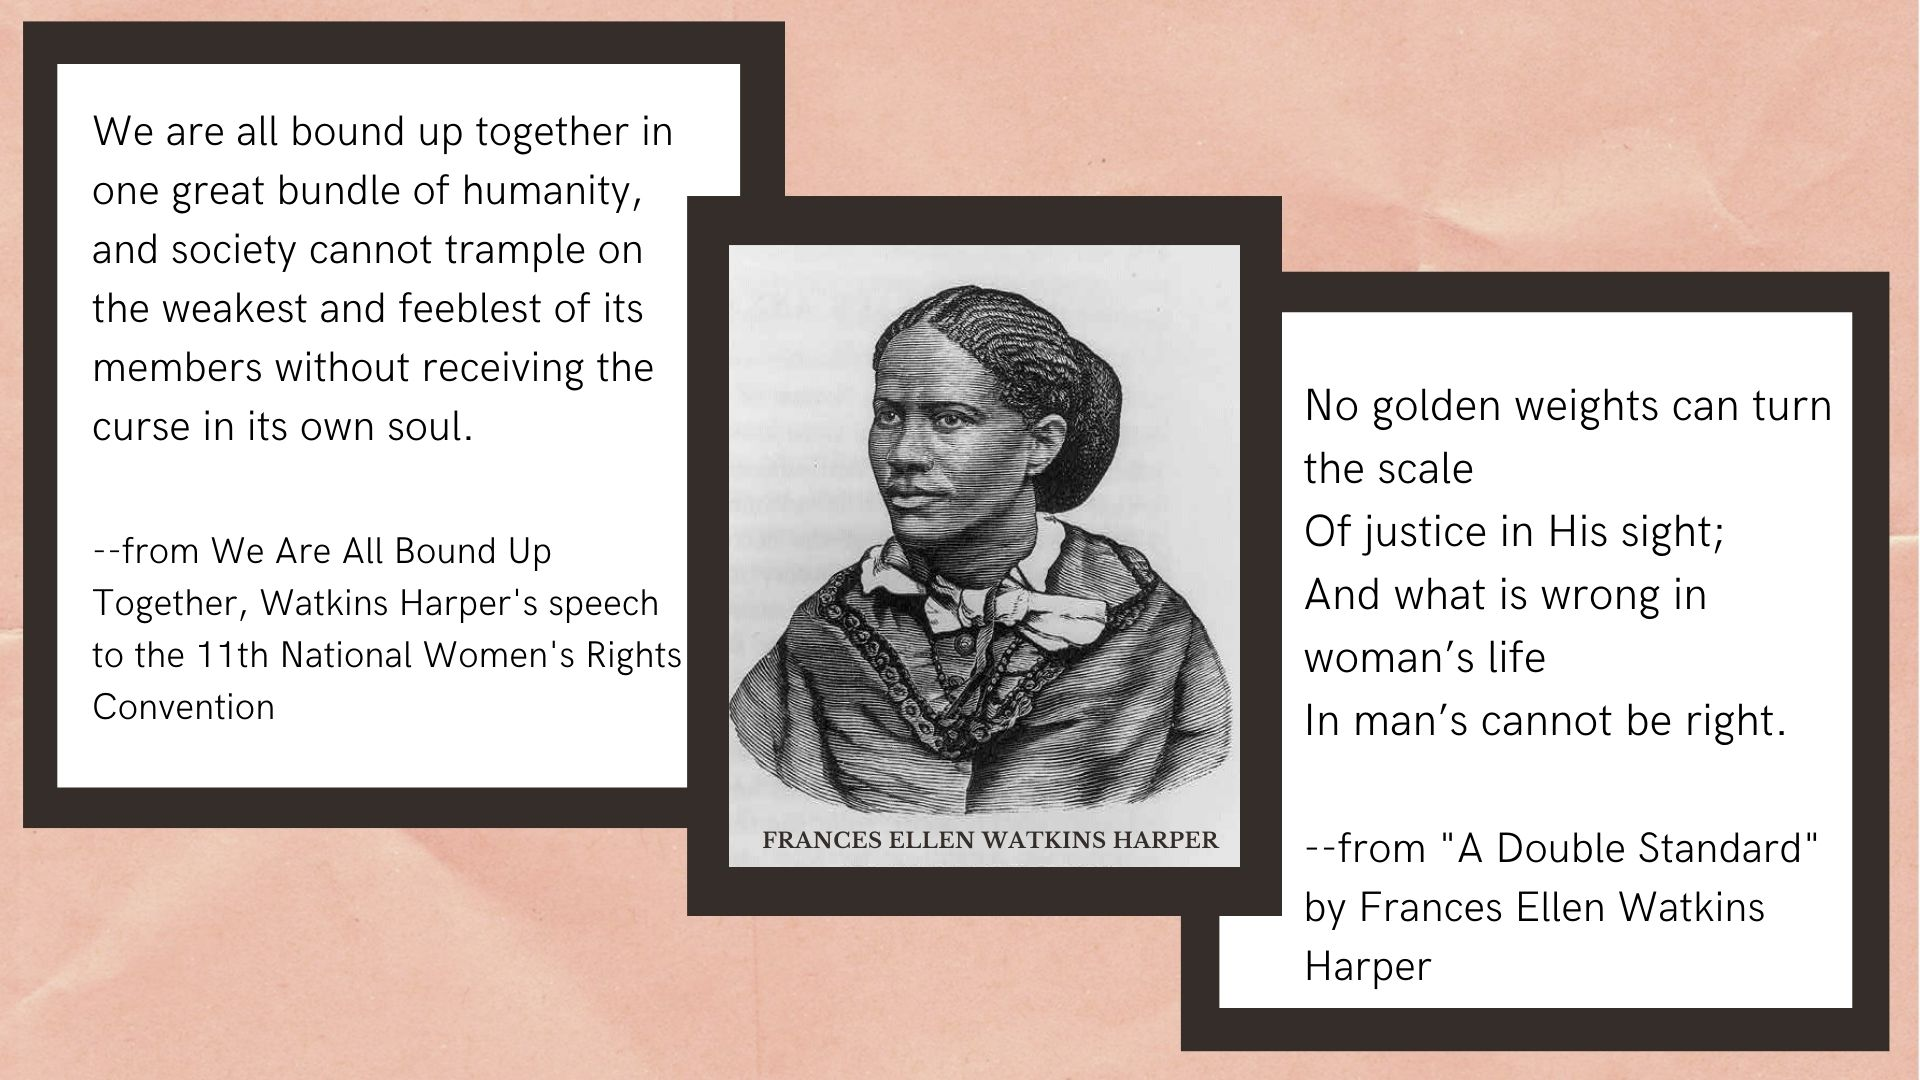 We are all bound up together in one great bundle of humanity, and society cannot trample on the weakest and feeblest of its members without receiving the curse in its own soul.  --from We Are All Bound Up Together, Watkins Harper's speech to the 11th National Women's Rights Convention